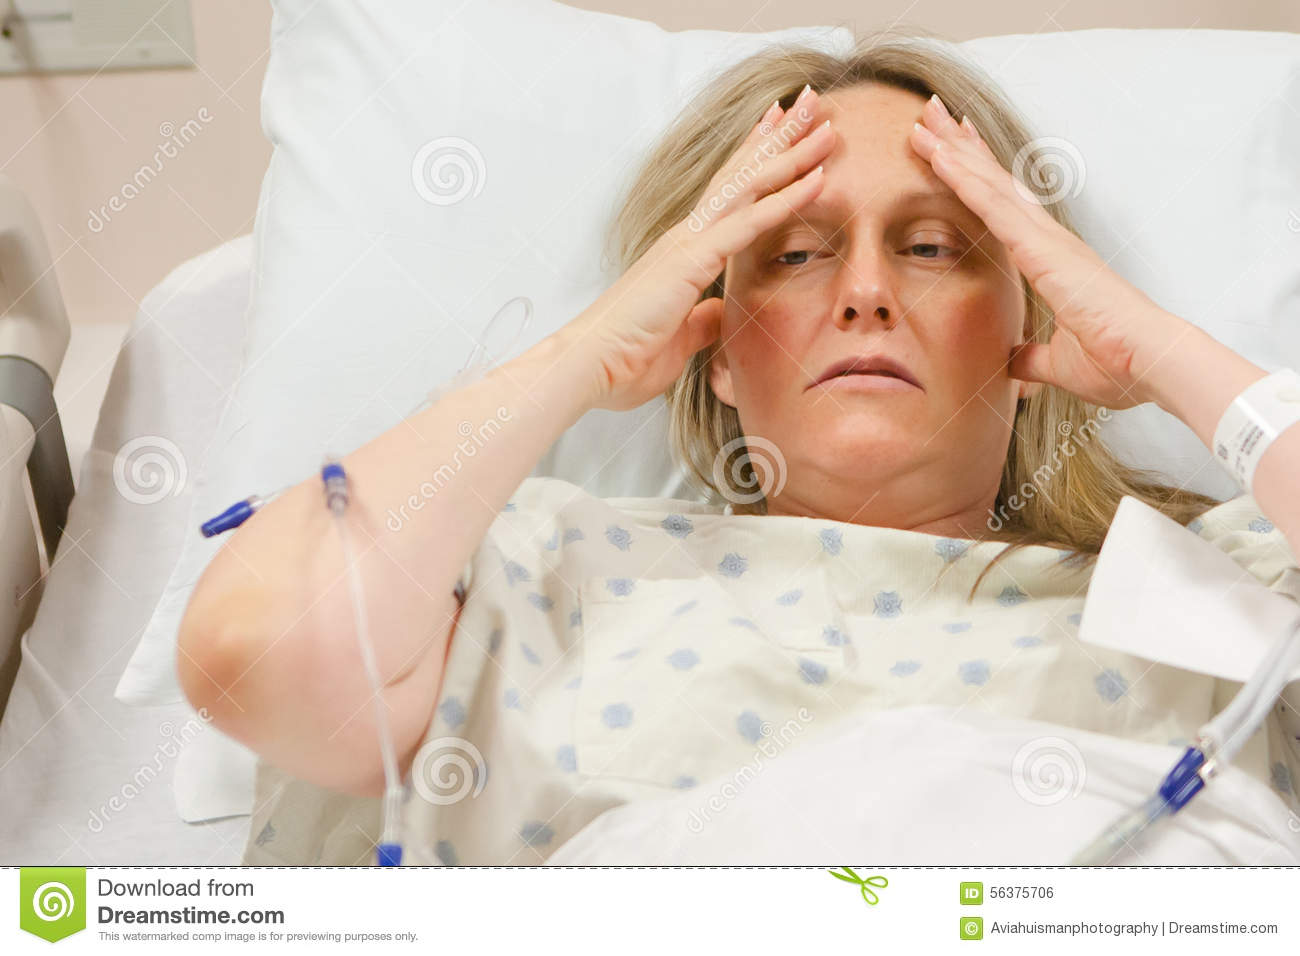 Women In Hospital Bed Sick sick woman in hospital stock photo - image ...